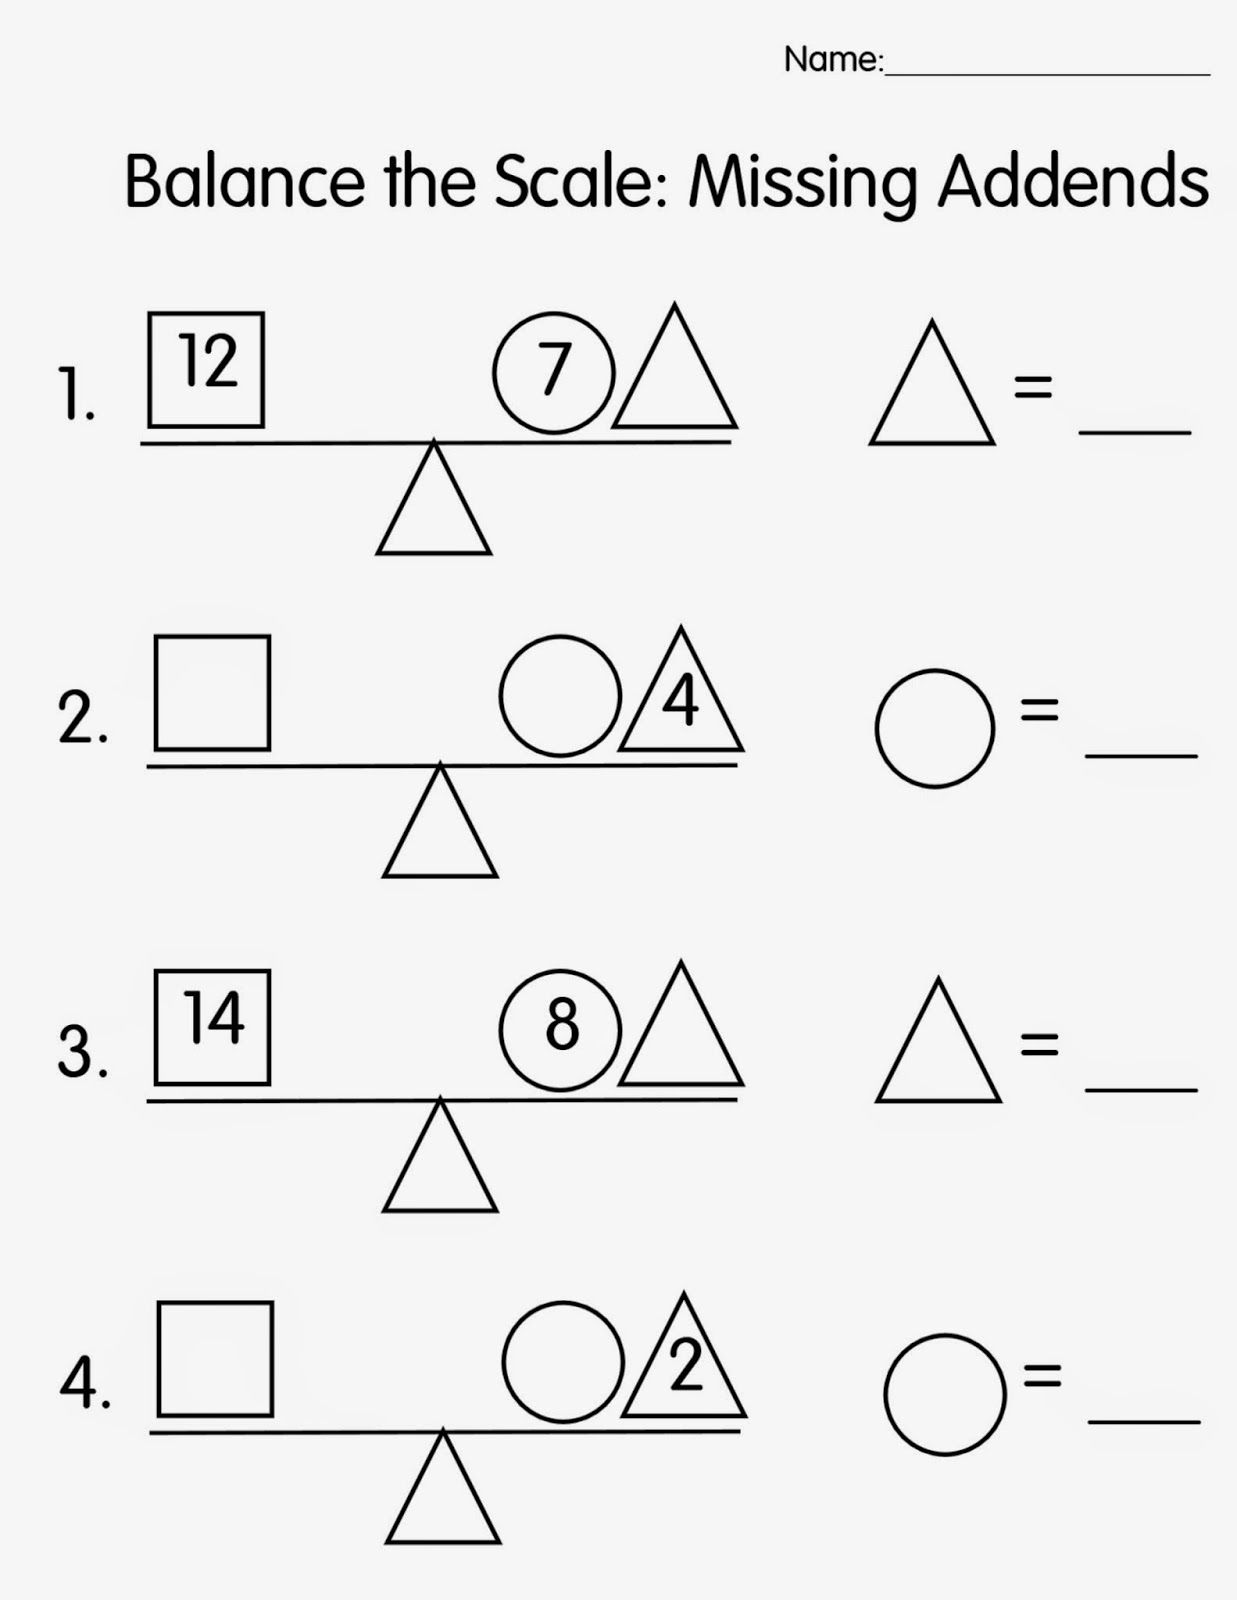 Worksheets Missing Addend Worksheets free balance the scale missing addends 4 worksheets love this worksheet 1 2 3 addend story problems out of ace numbers online game